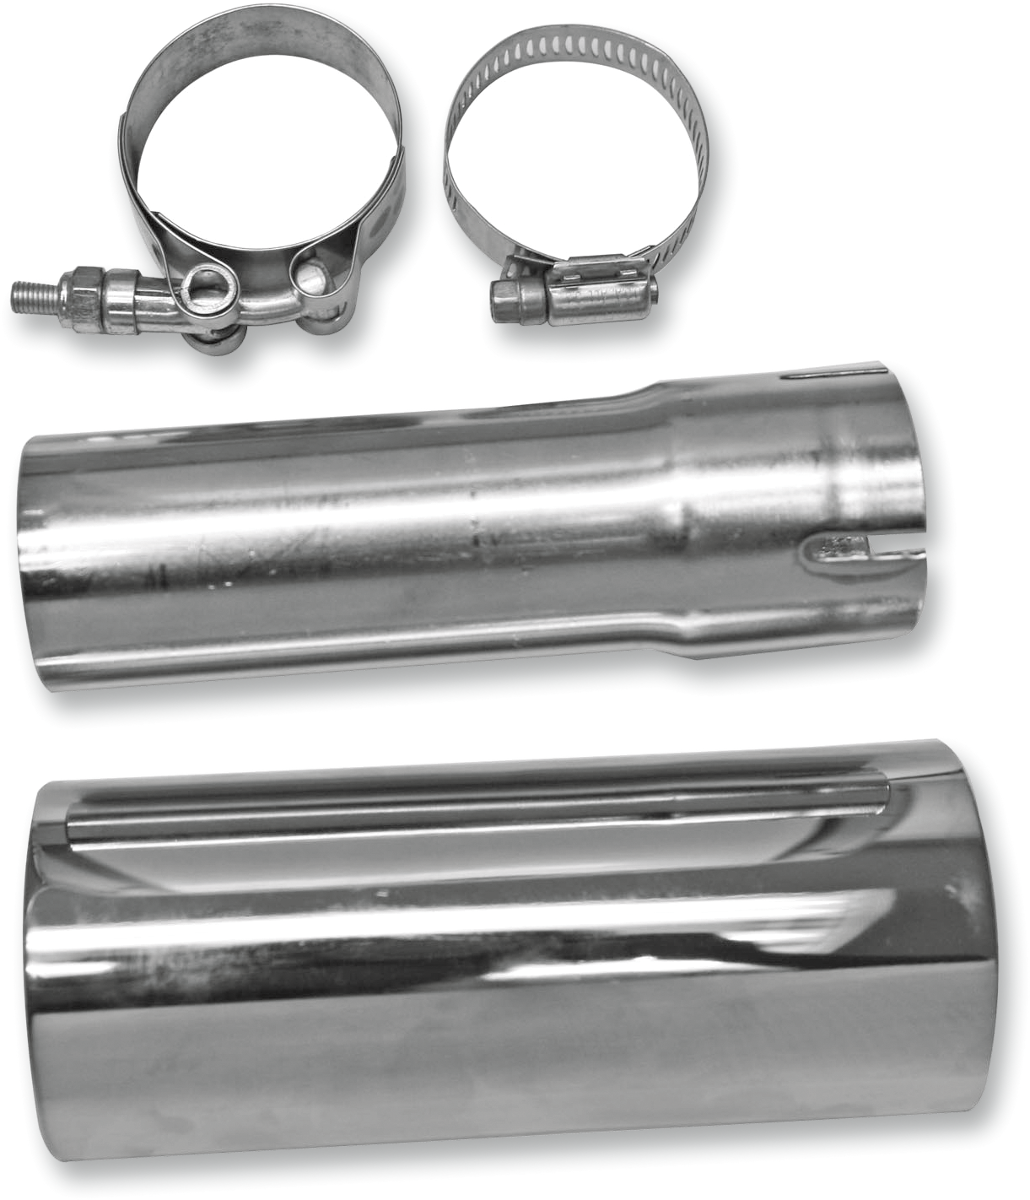 "Bassani Xhaust 1 3/4"" Exhaust 2 into 1 Muffler Adapter Kit for 2010 Harley FLHX"